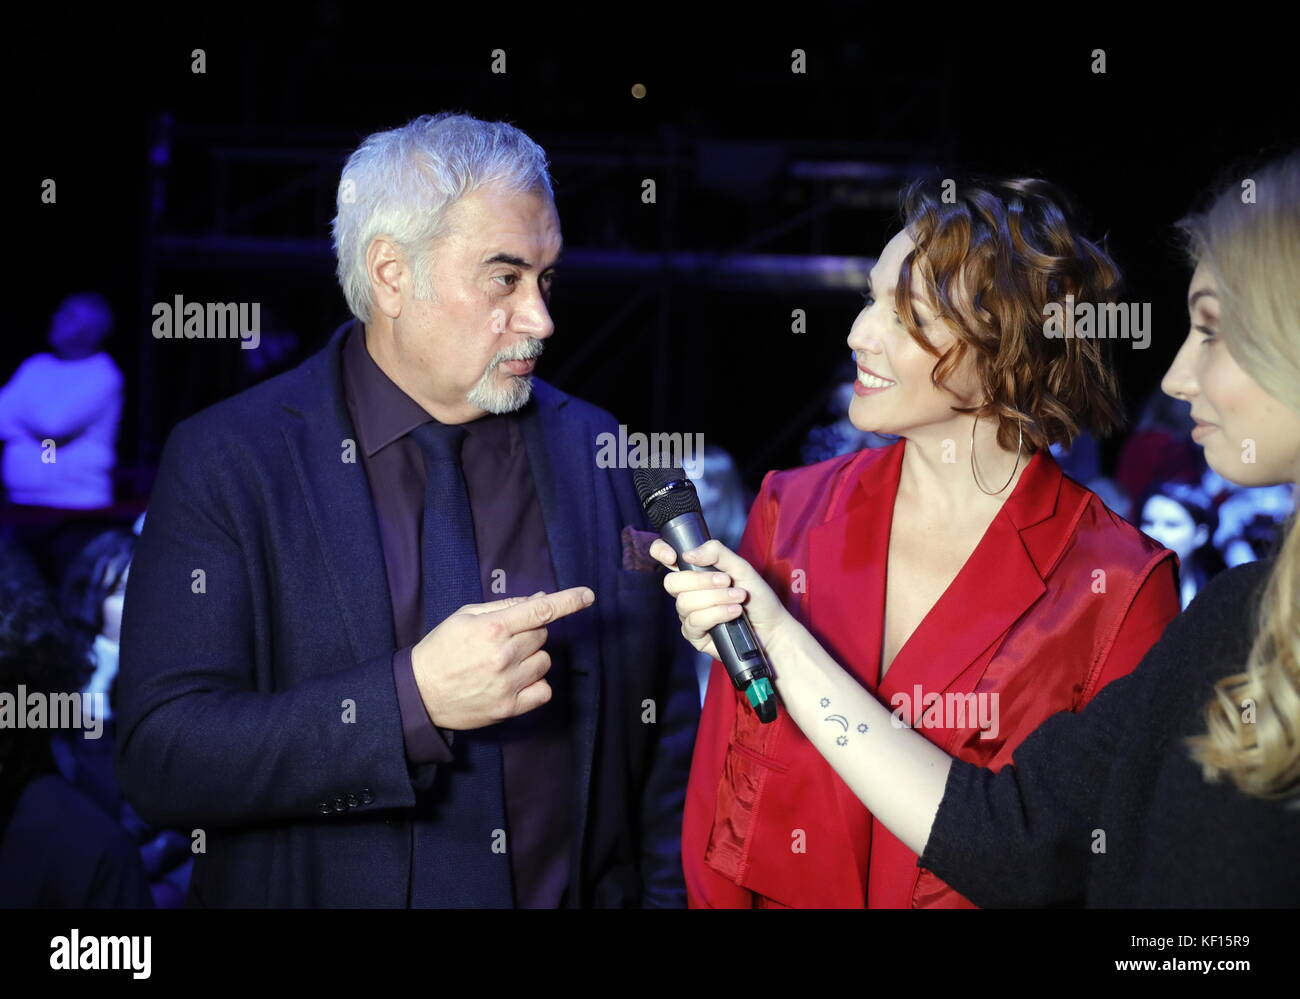 Valery Meladze brought daughters in the UAE, and Janabaev